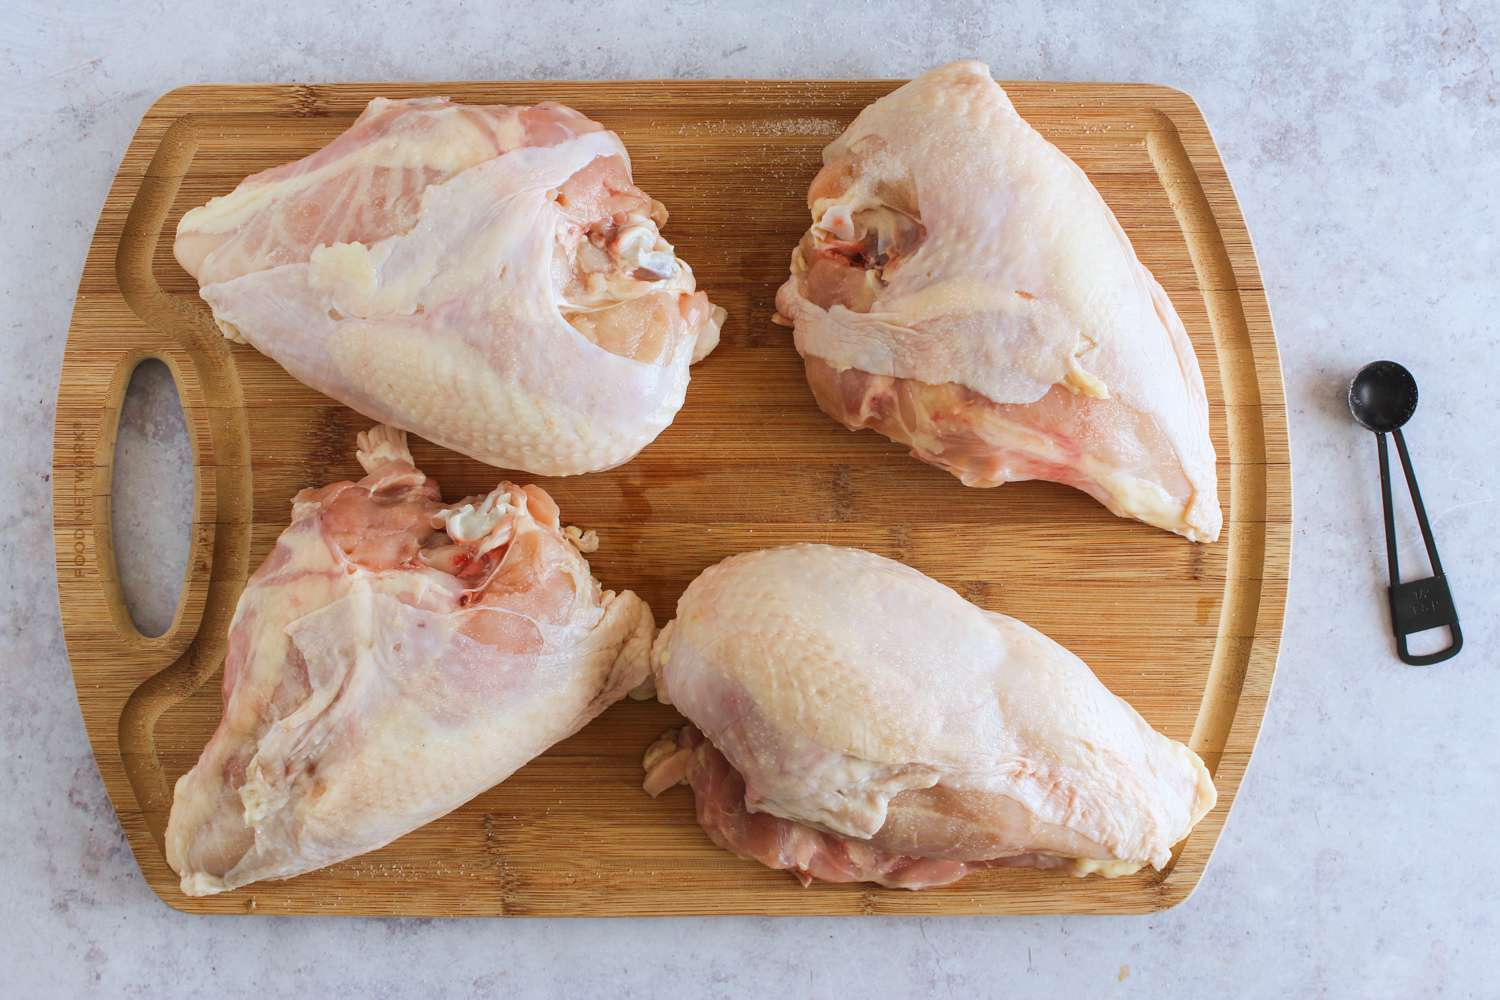 Chicken breasts sprinkled with salt on a wooden cutting board